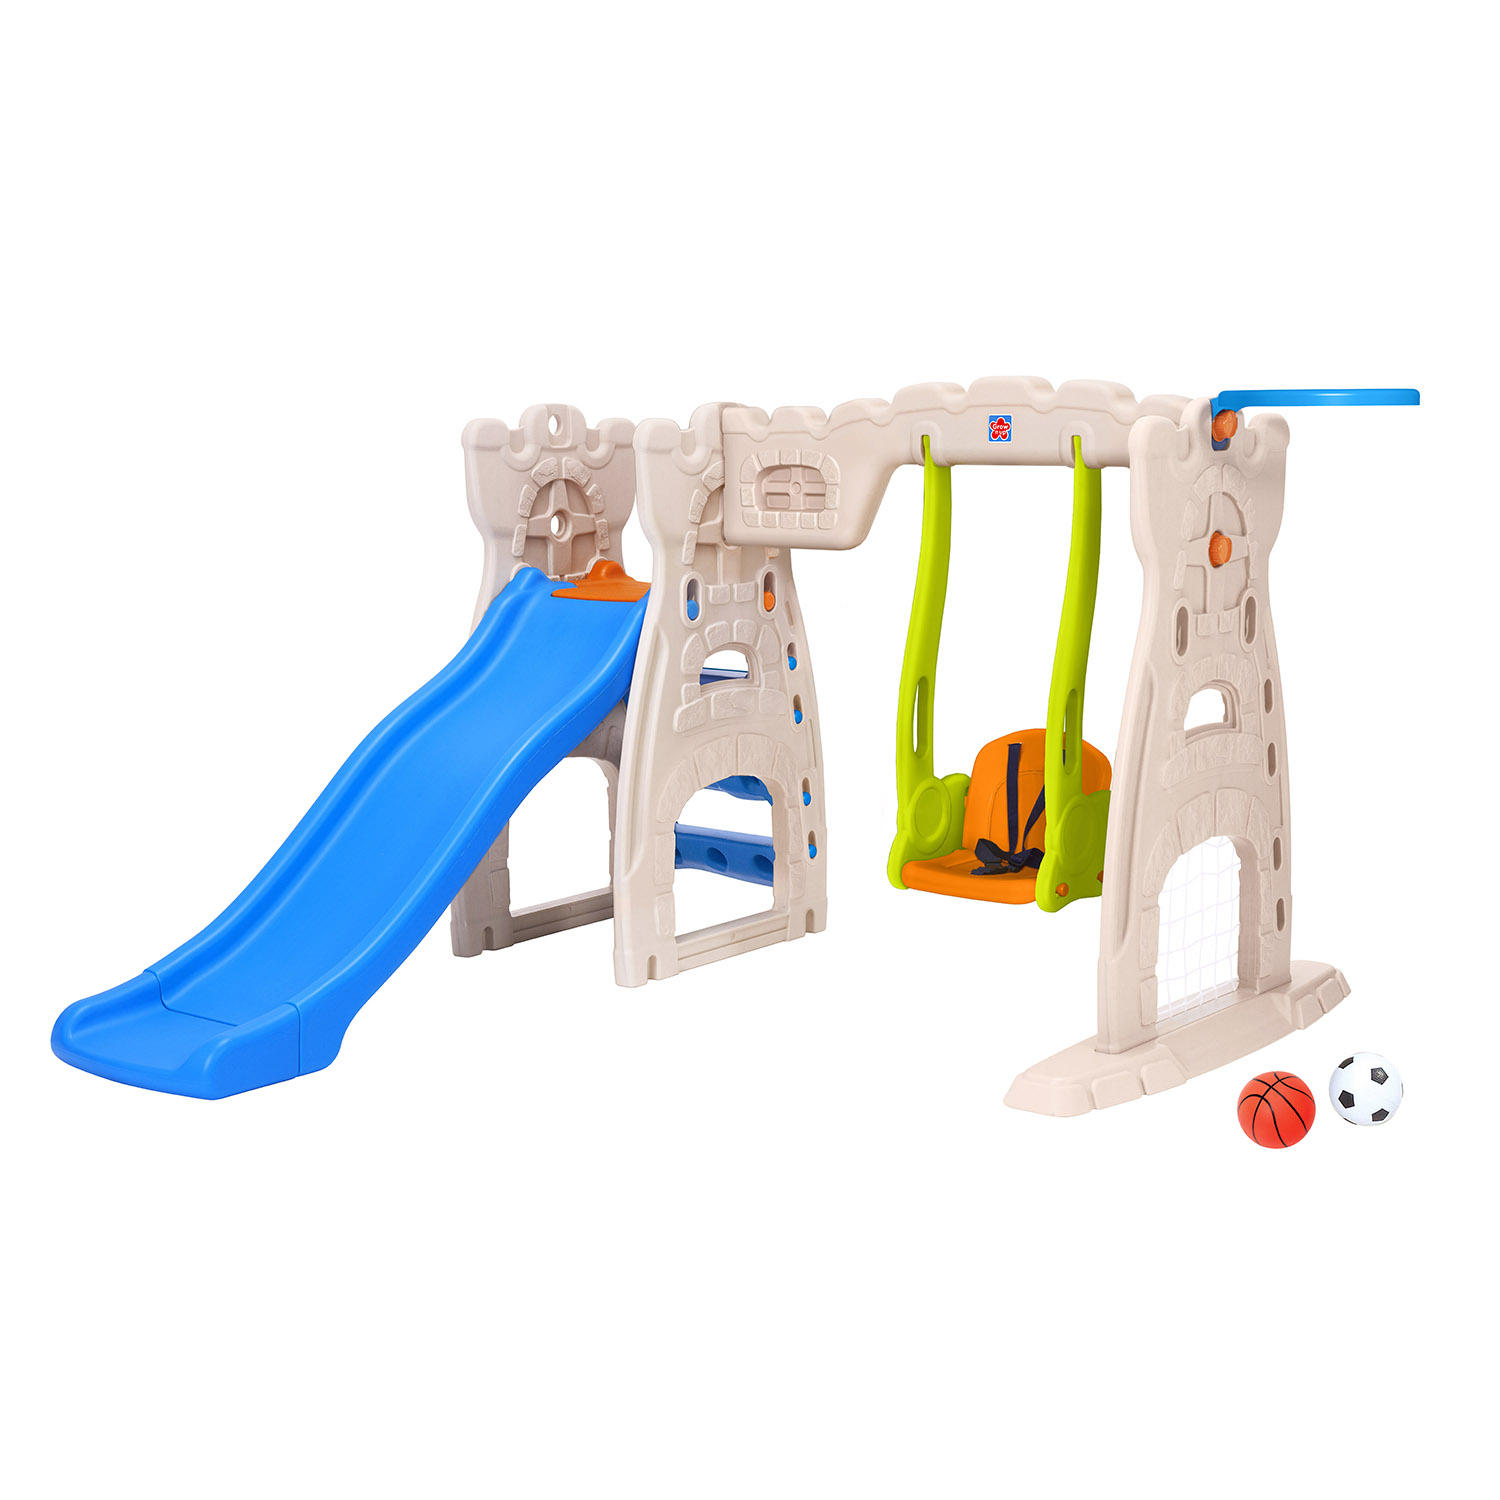 Grow N Up Limited Scramble 'N Slide Play Center (2016-05)